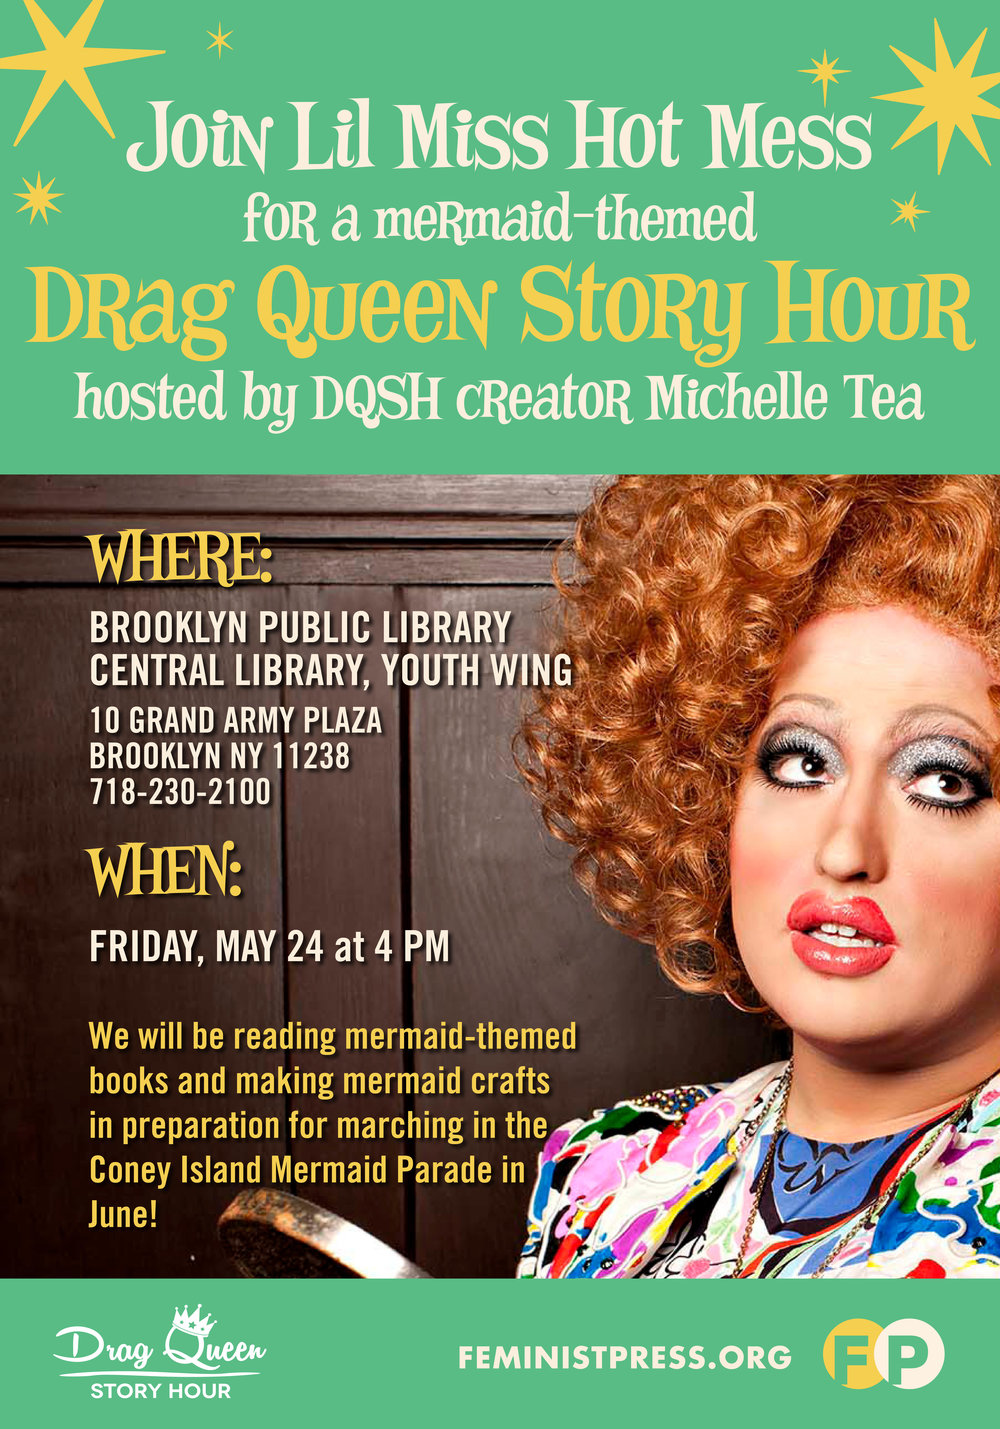 MICHELLE_TEA_DQSH_event_BROOKLYN_PUBLIC_LIBRARY.jpg